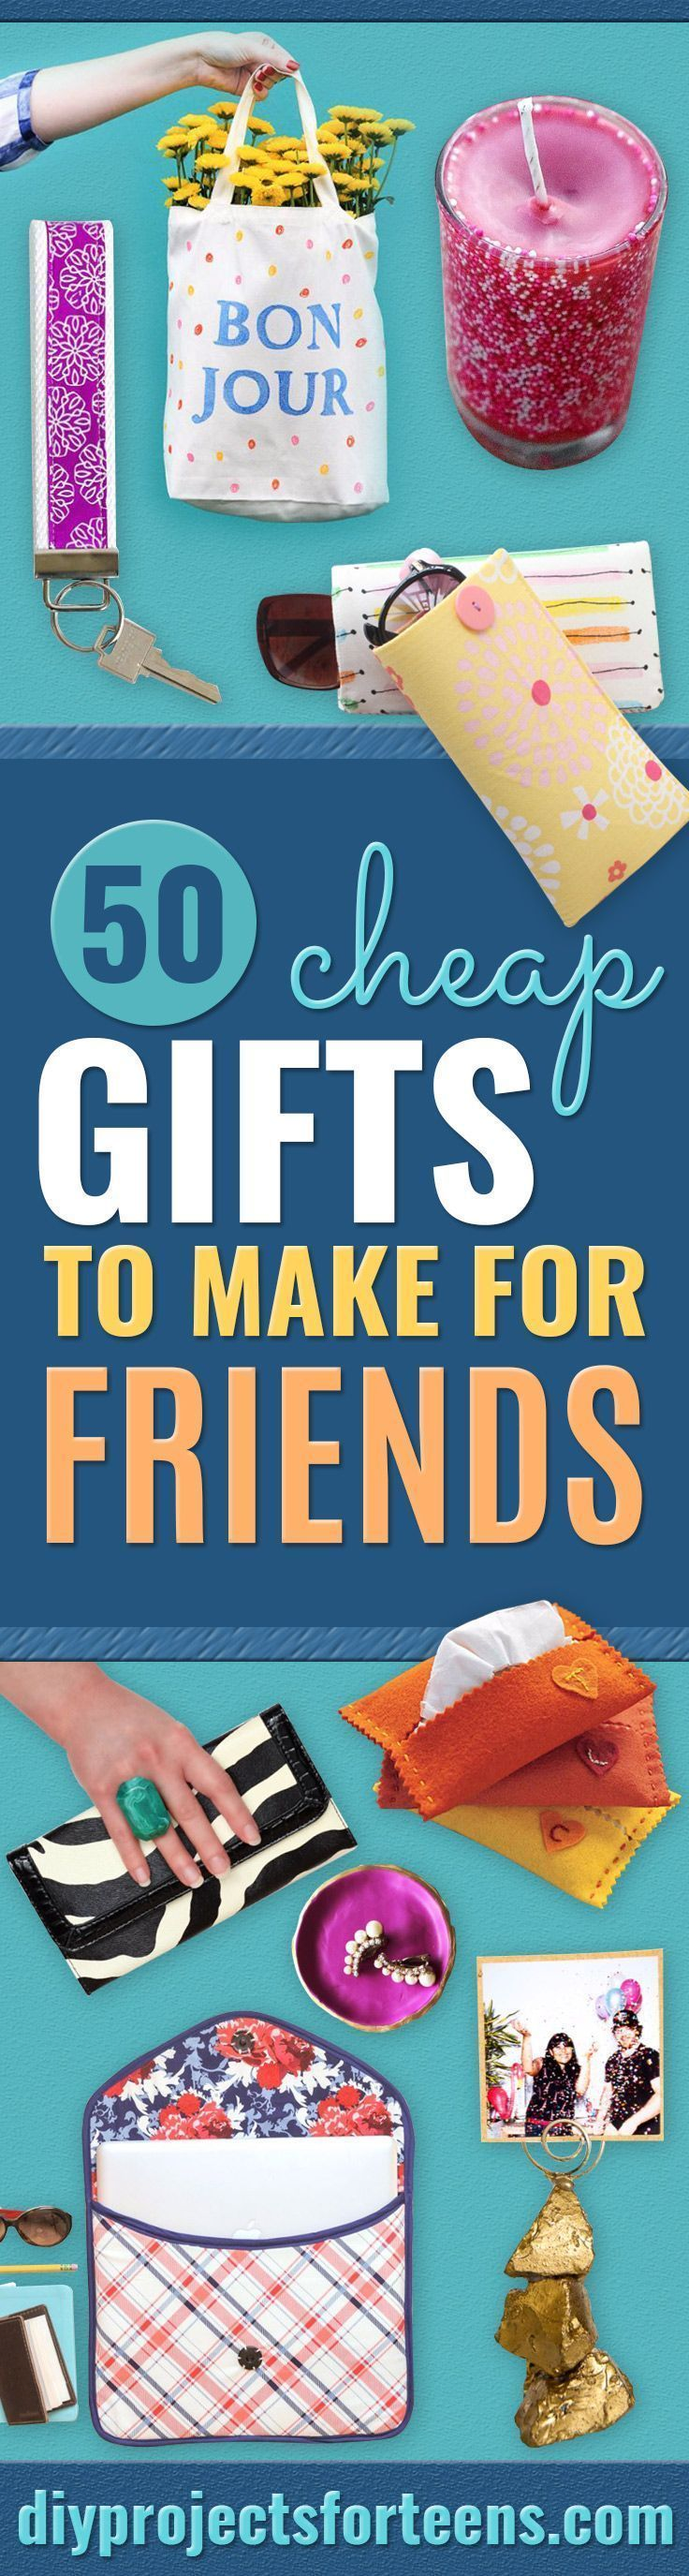 DIY Gifts for Friends - Cheap Presents to Make - Ideas for Him Her BFF Mom or Dad | Diy gifts ...